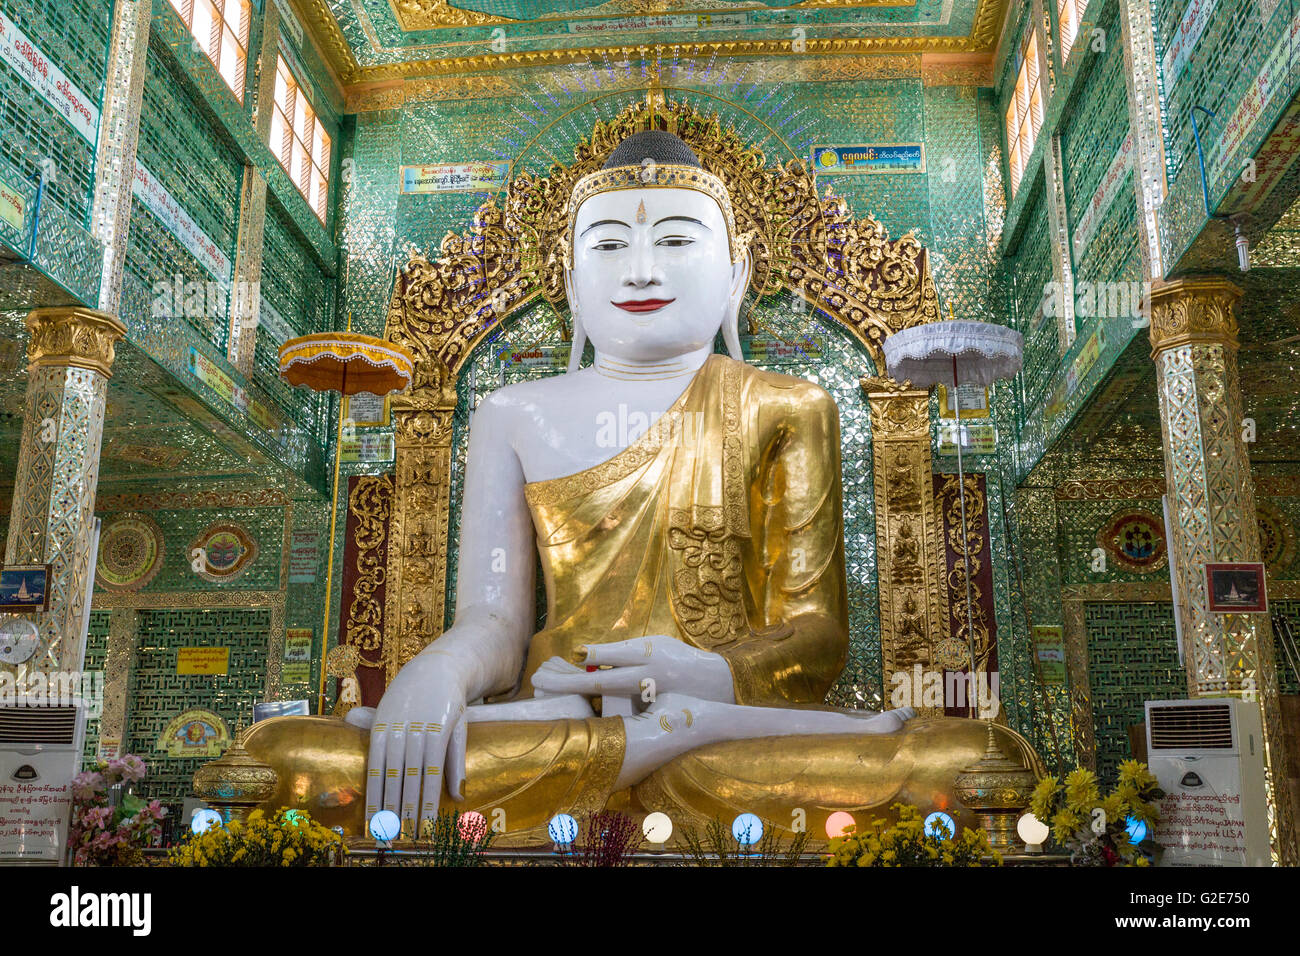 Ornate statue in temple, Pagodas, Old Temple Architecture, Myanmar, Burma, South Asia, Asia Stock Photo